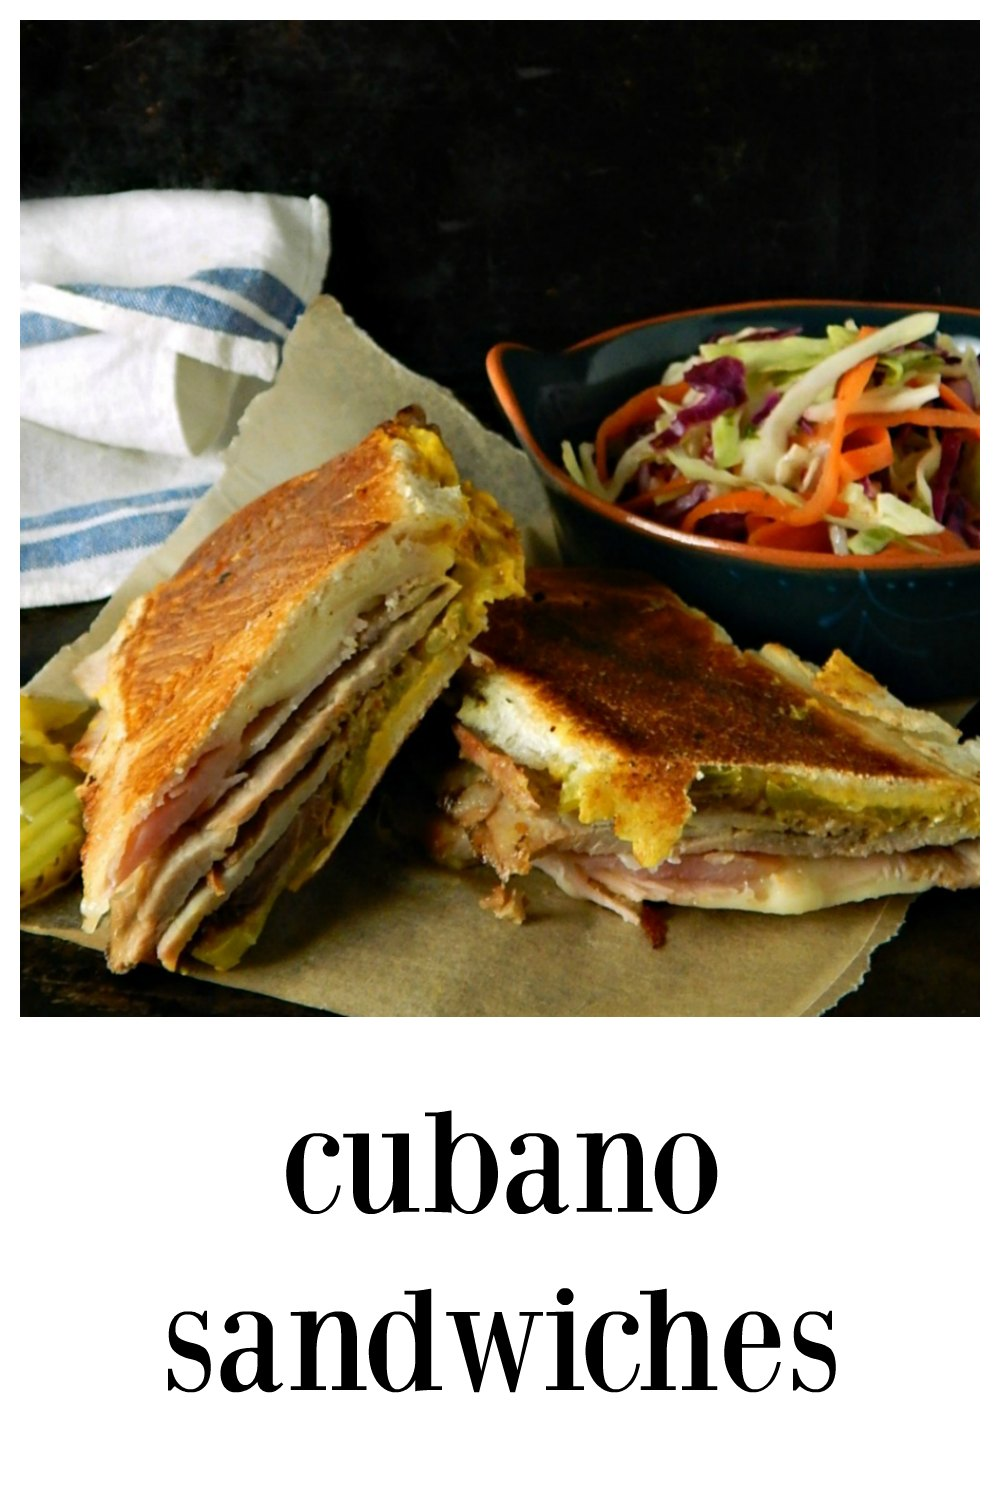 There's something magical about Cubano Cuban Sandwiches when the citrusy garlicky pork meets the salty ham, the melty cheese & toasted bread. #Cubano #Sandwiches #CubanSandwiches #CubanoSandwiches #CubanRecipes